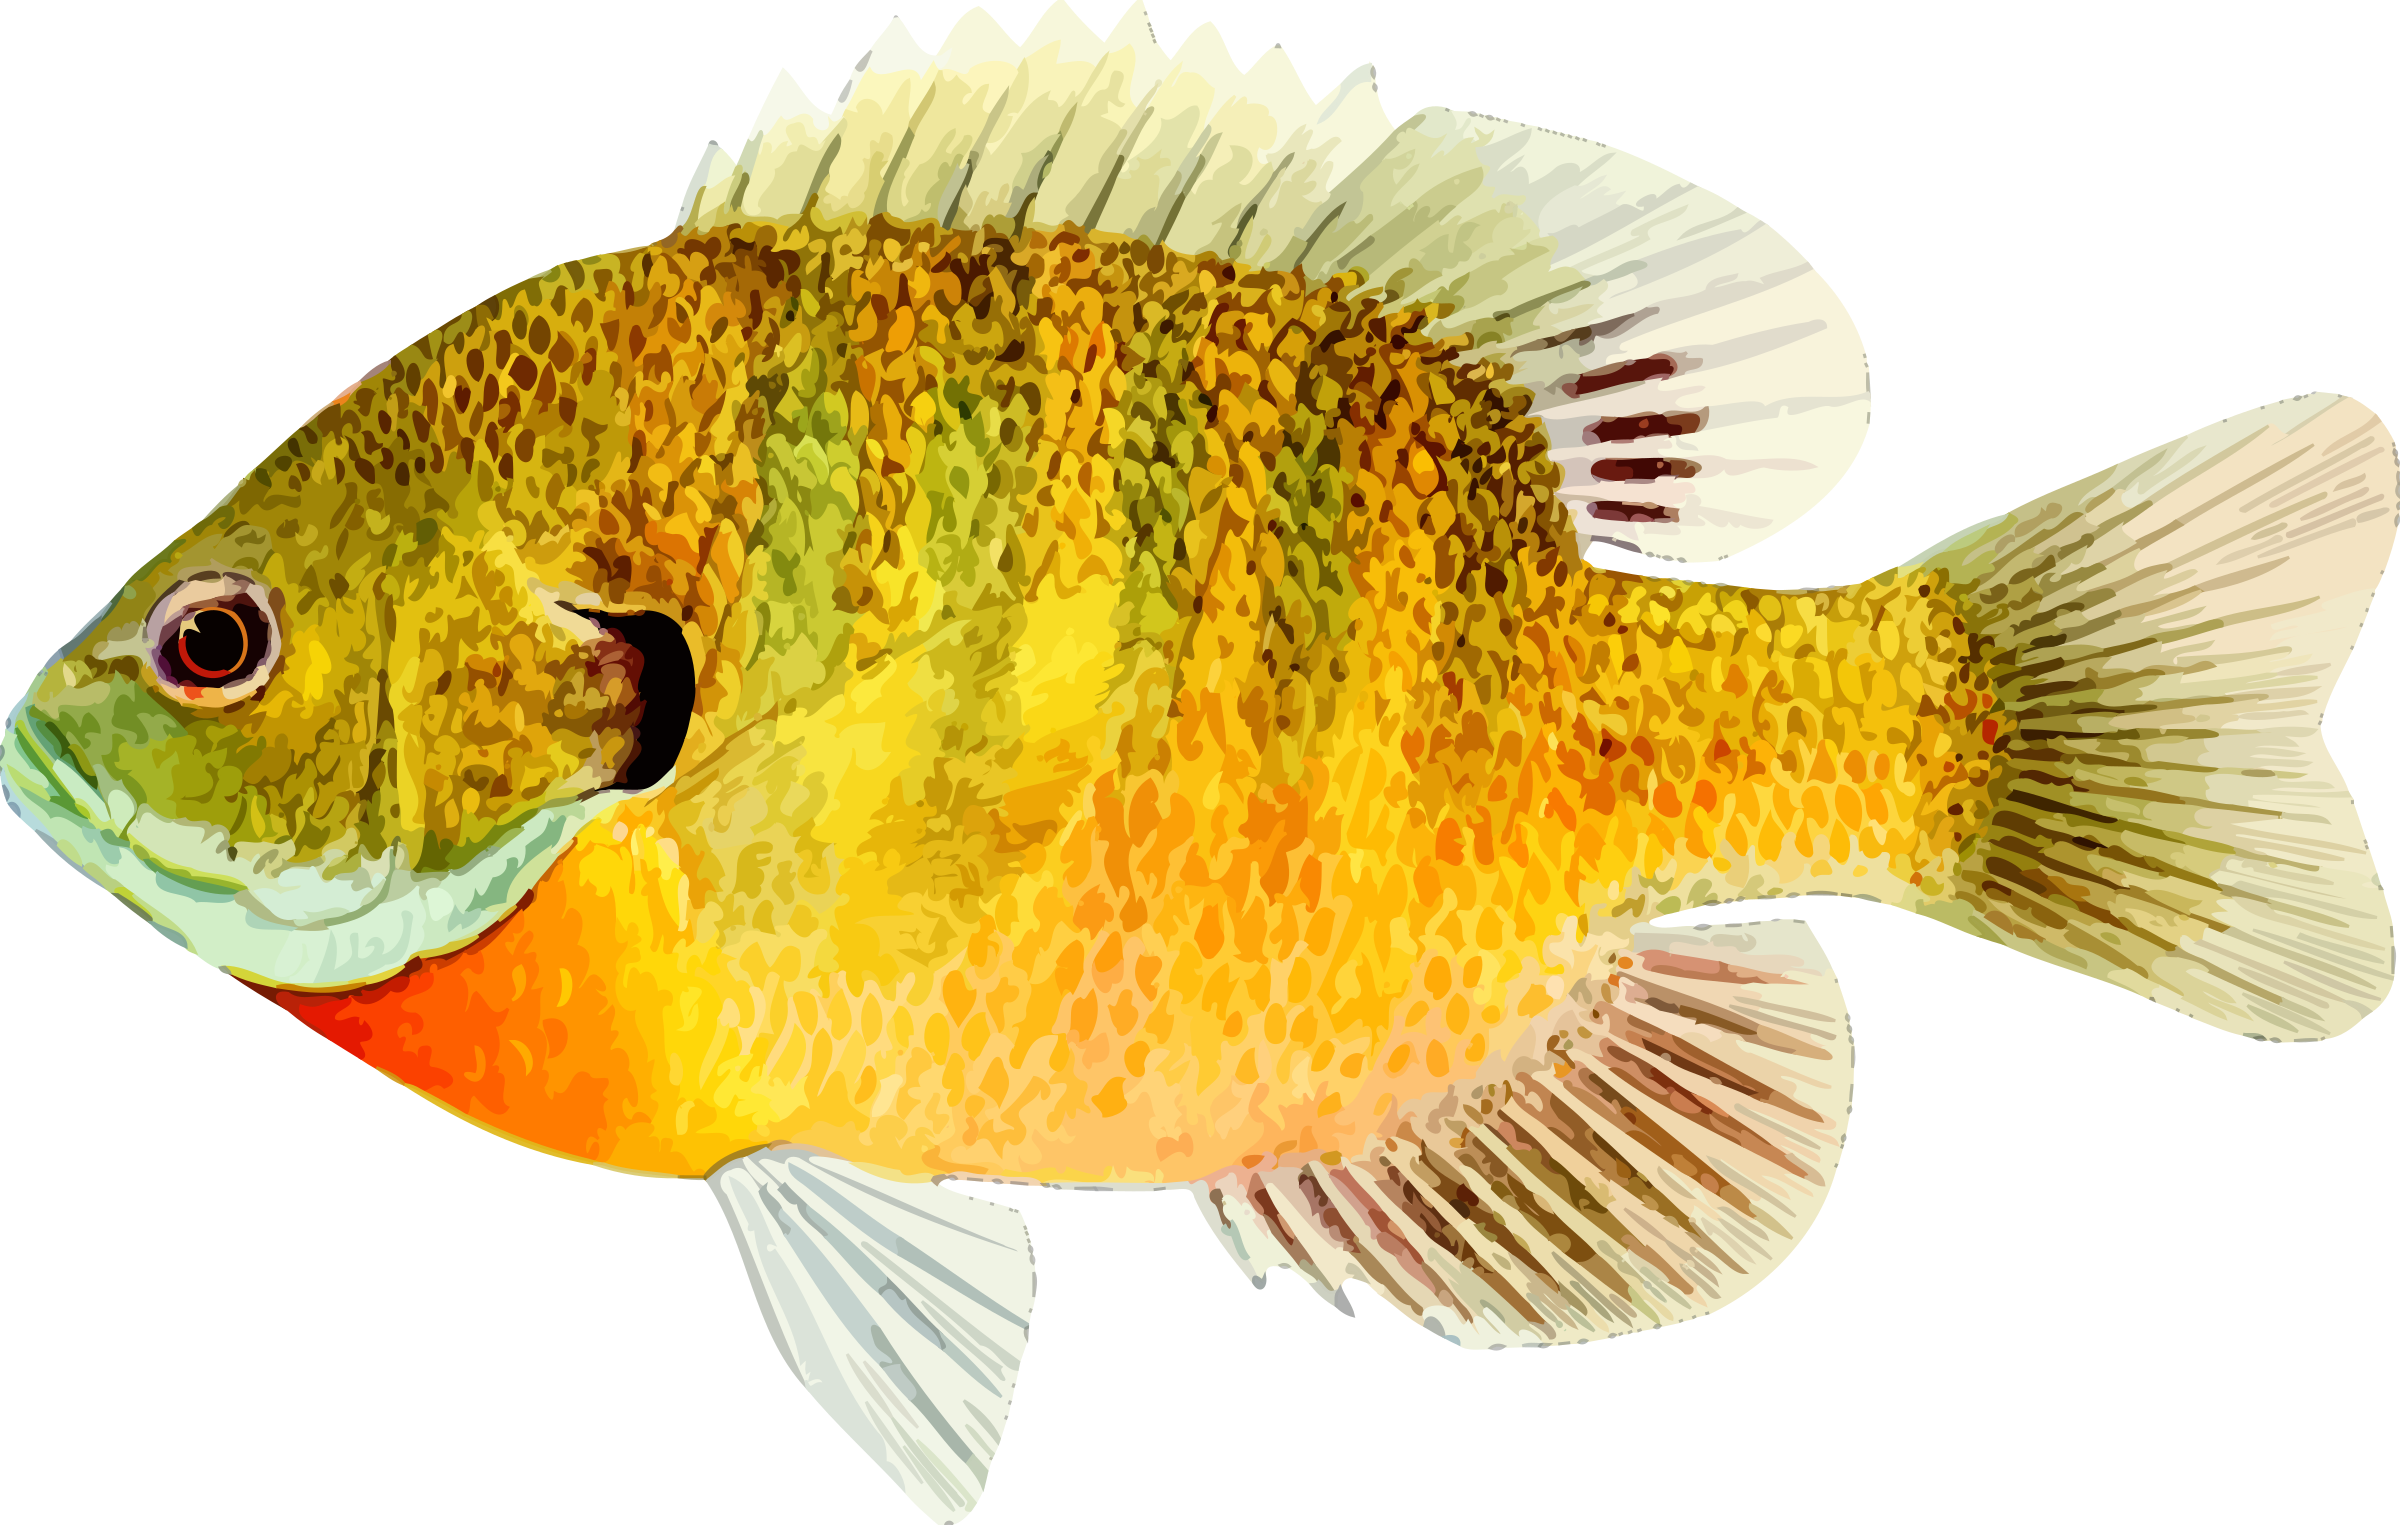 Bluegill drawing simple. Selected pictures of fish